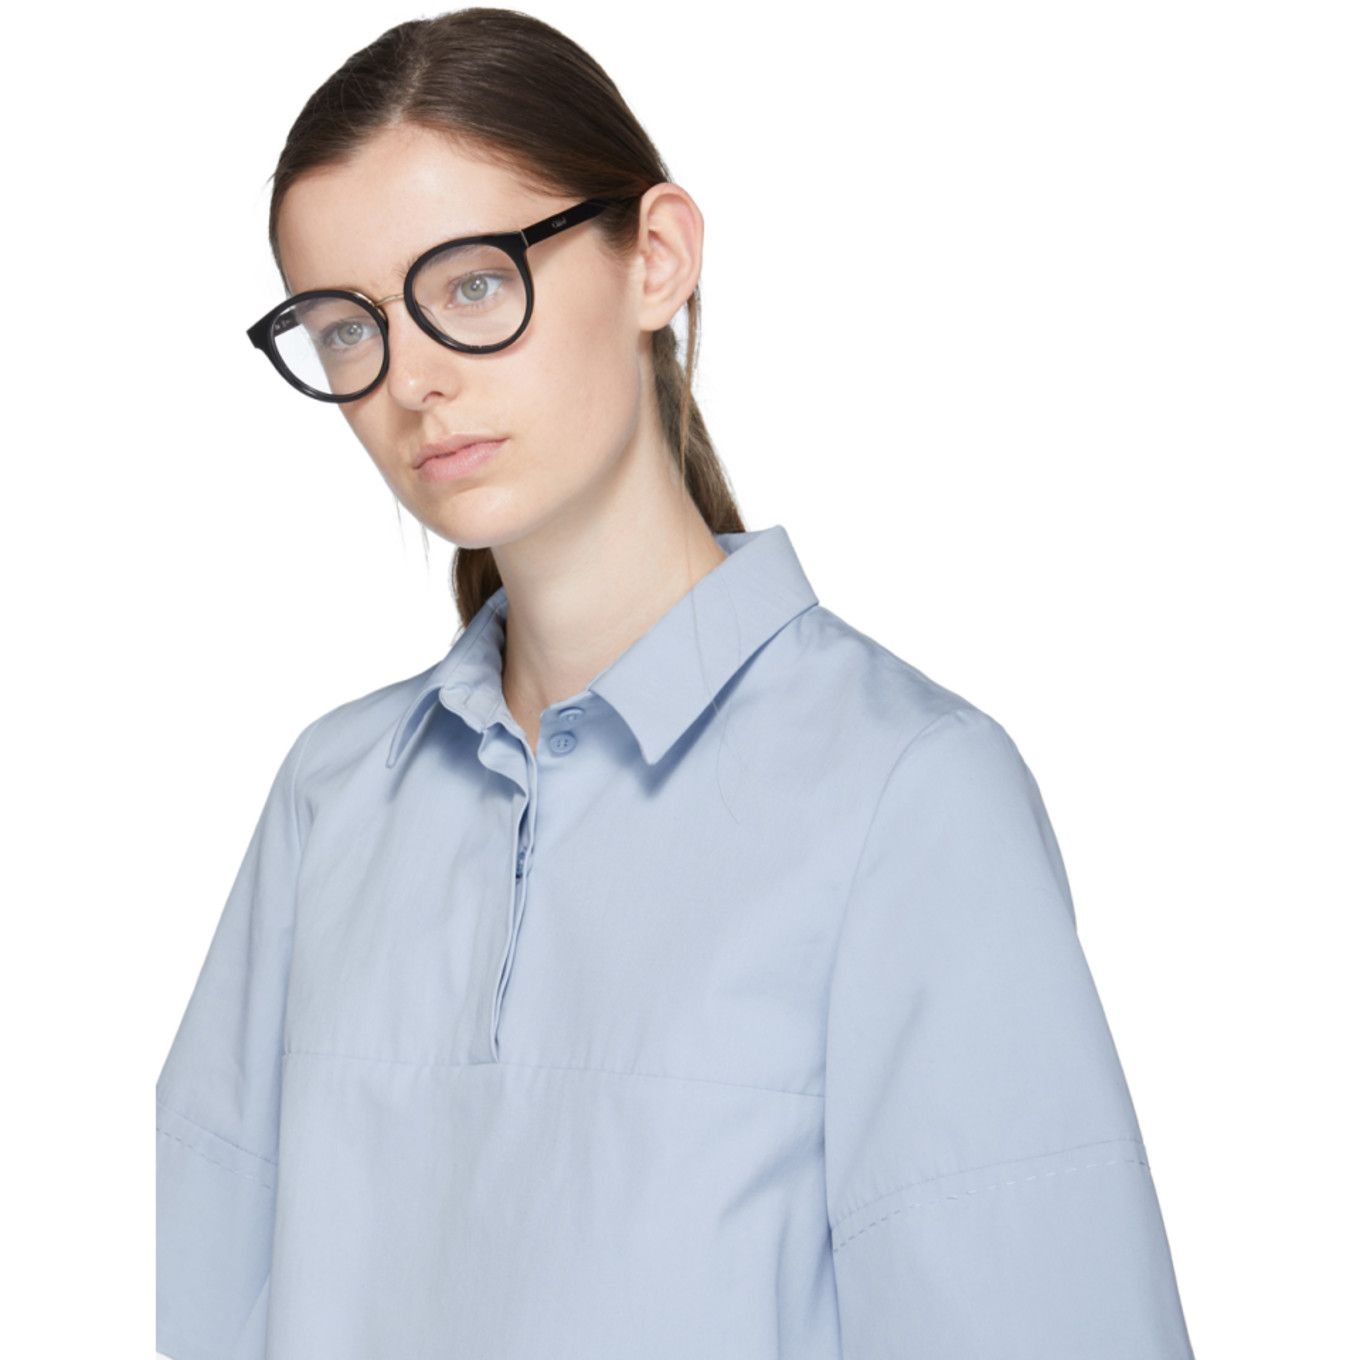 6b2774c1b1b Chloé - Black Round Glasses